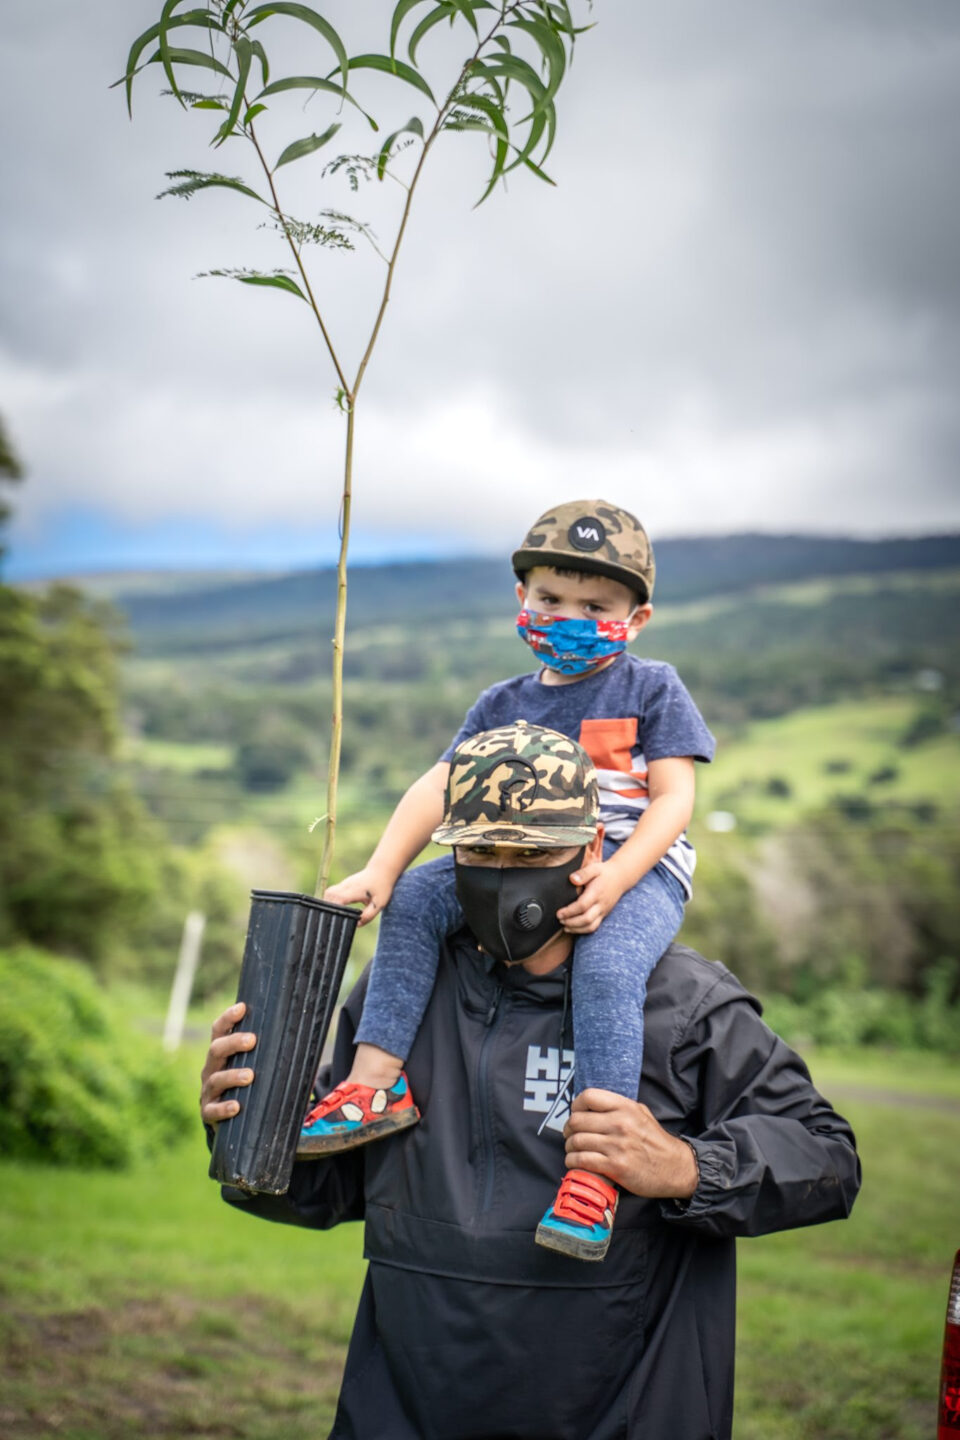 Volunteers and staff joined at public and private properties on Moloka'i, Lāna'i, Maui, Hawai'i, Kaua'i and O'ahu yesterday, October 30, to plant trees and other plants. Hundreds of volunteers planted thousands of plants at dozens of sites across the state.